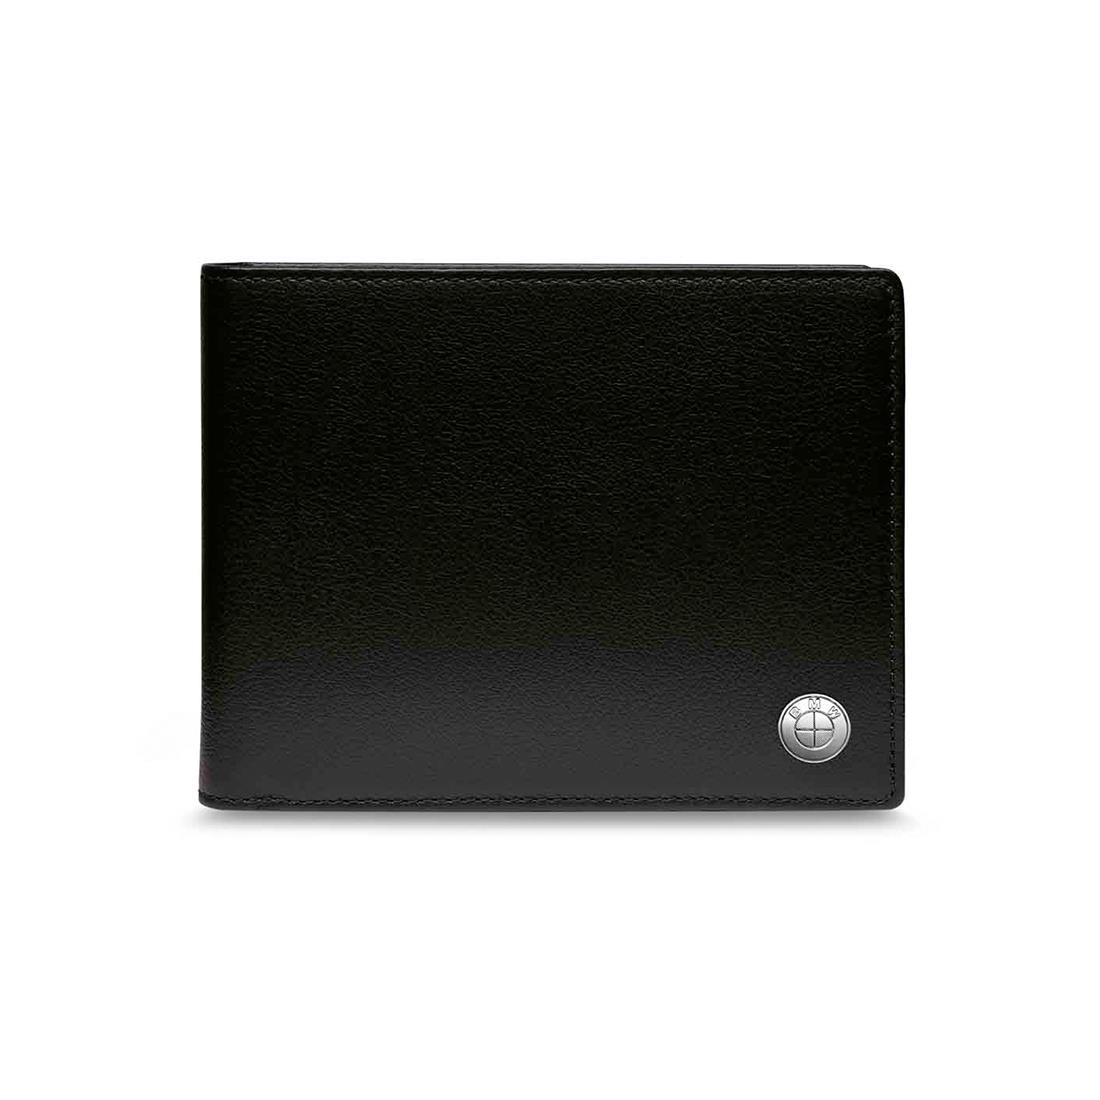 BMW WALLET WITH COIN POUCH, MENS